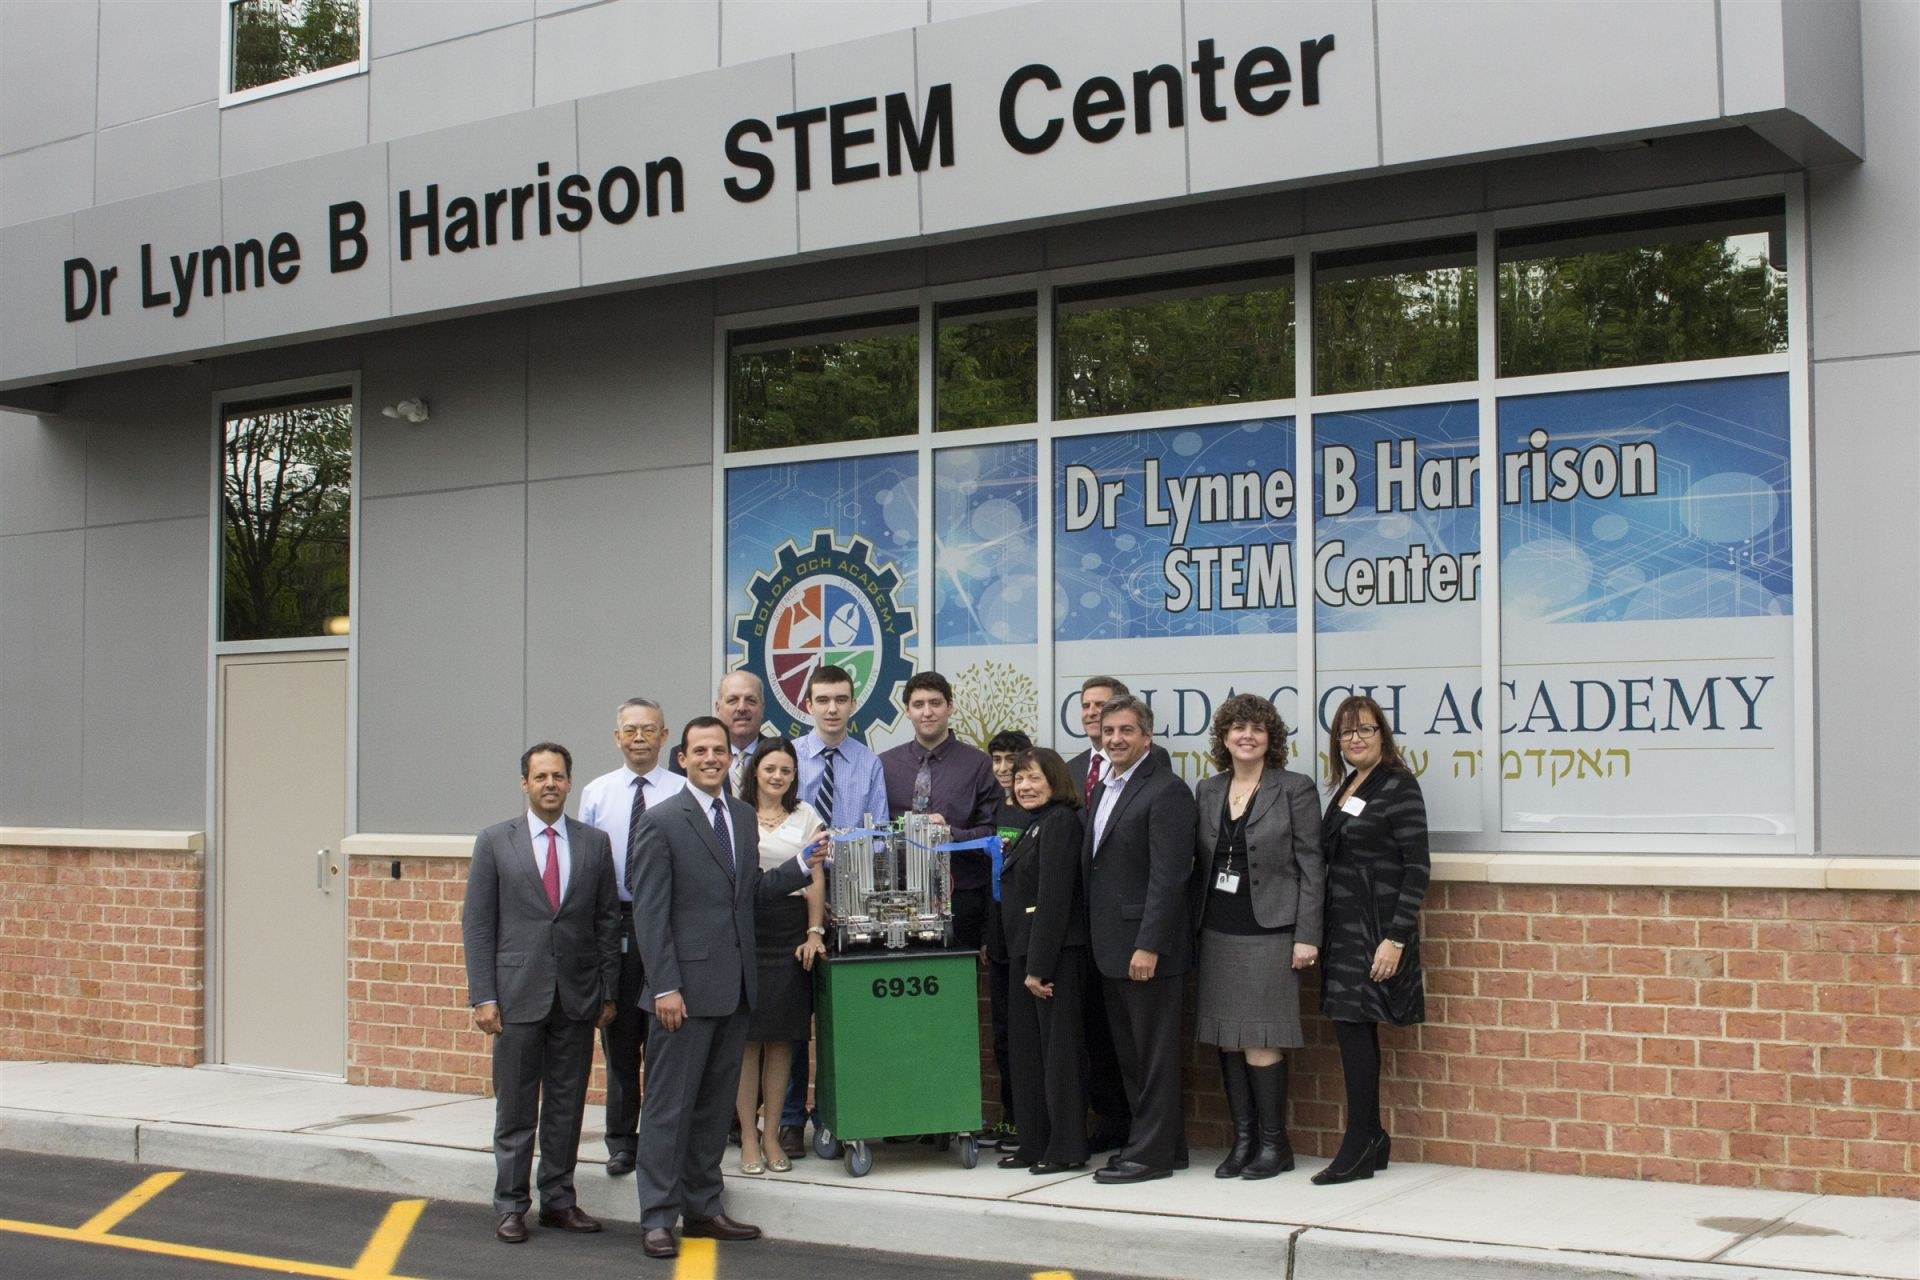 Celebrating the ribbon-cutting of the state-of-the-art Dr Lynne B Harrison STEM Center